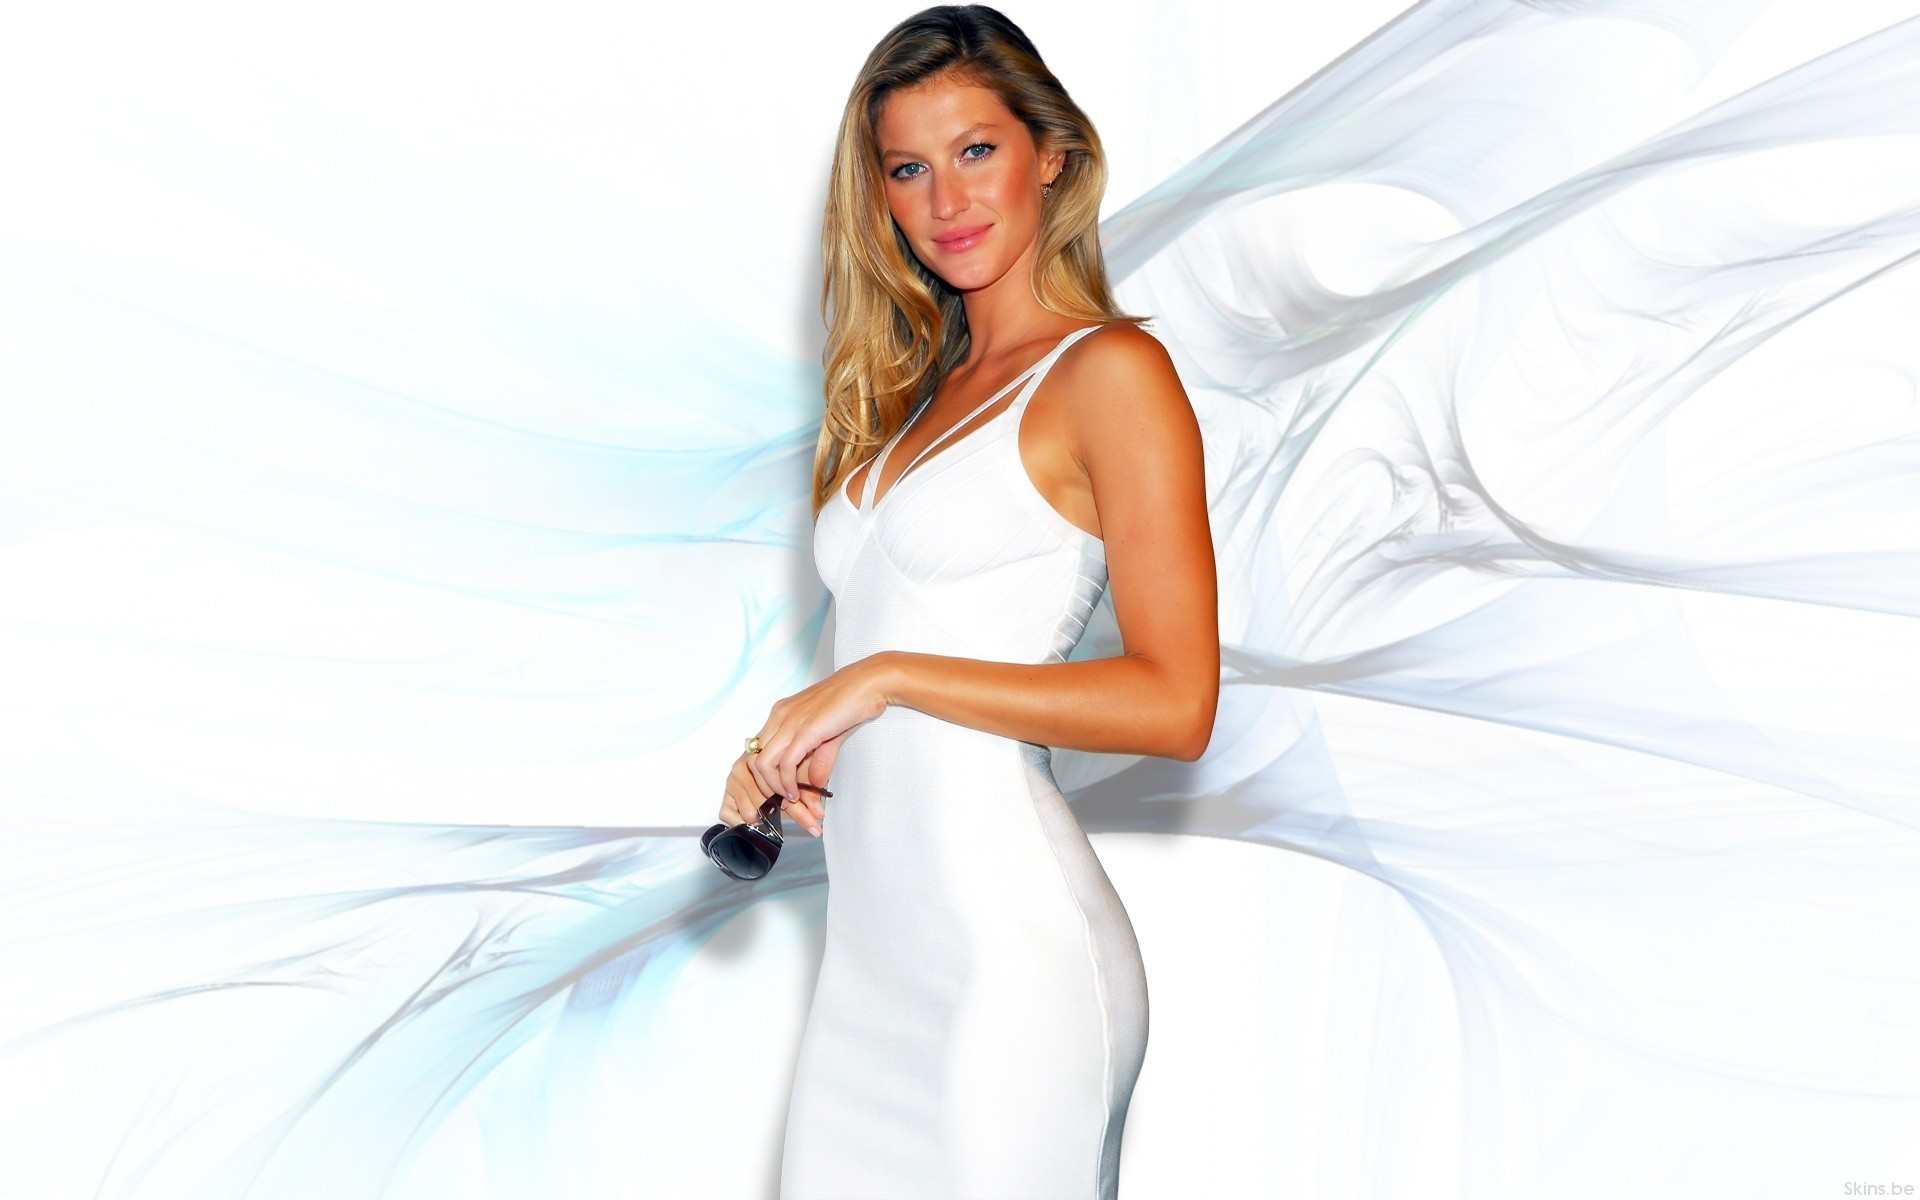 woman Gisele Bundchen supermodels HD Wallpaper